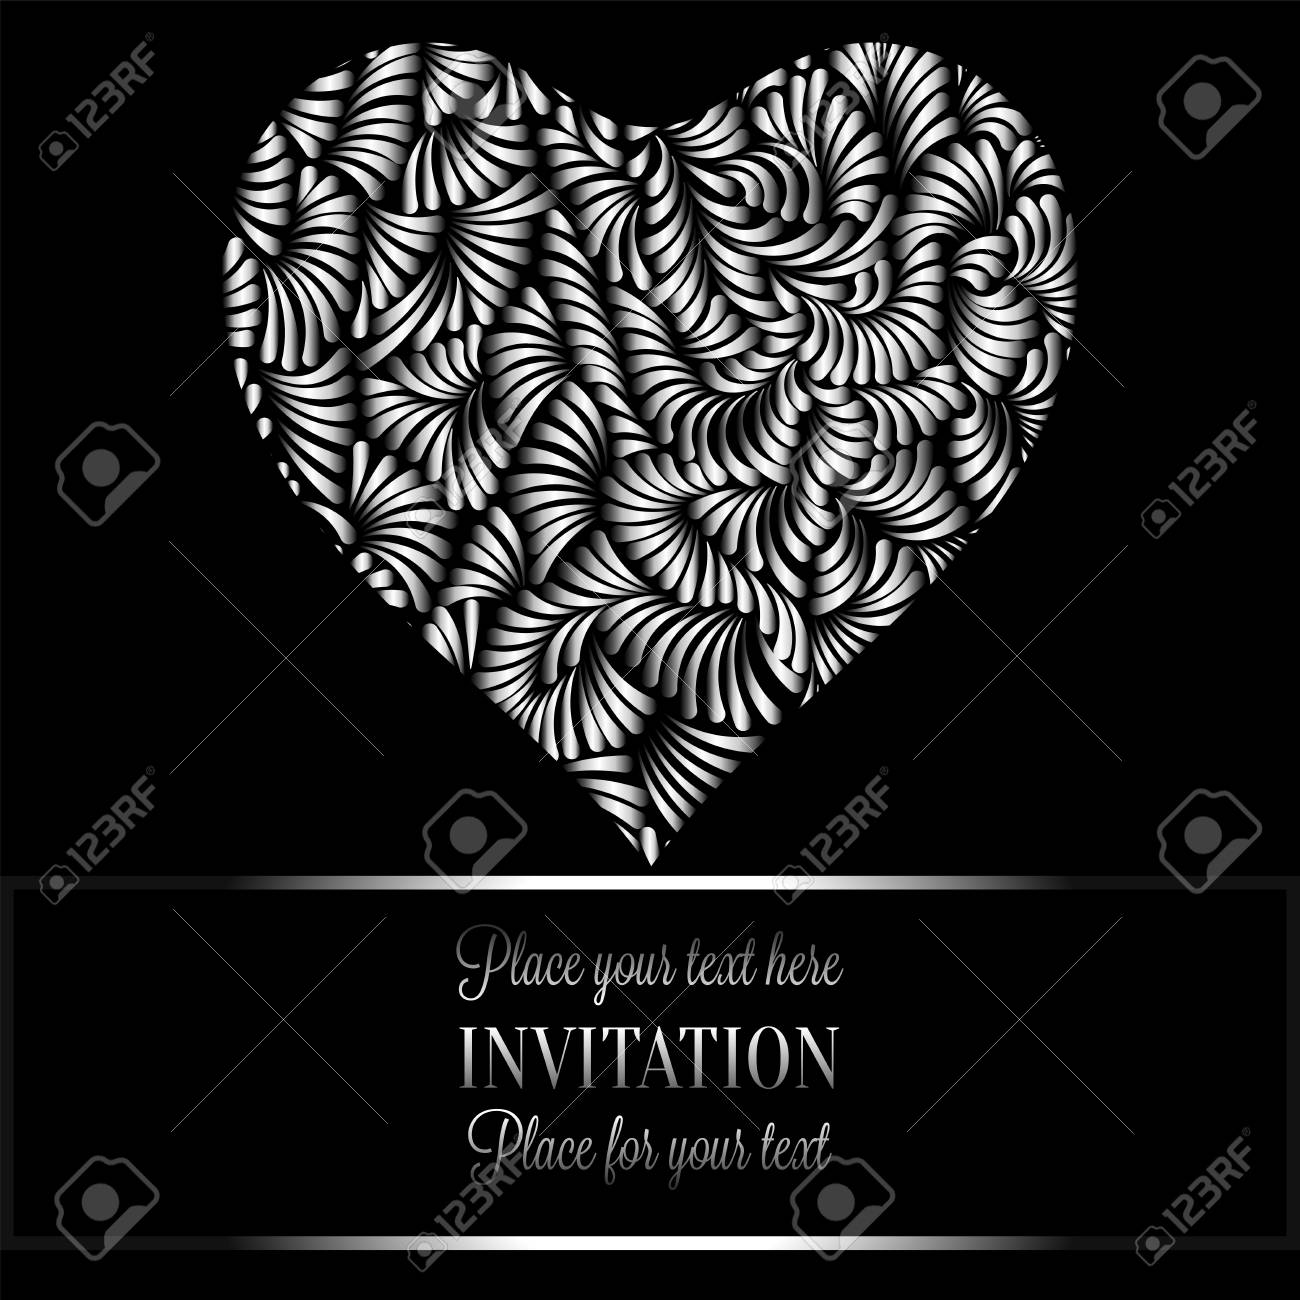 Must see Wallpaper Black And White Romantic - 68384314-romantic-background-with-antique-luxury-black-and-silver-vintage-frame-victorian-banner-heart-made-o  Snapshot_122058.jpg